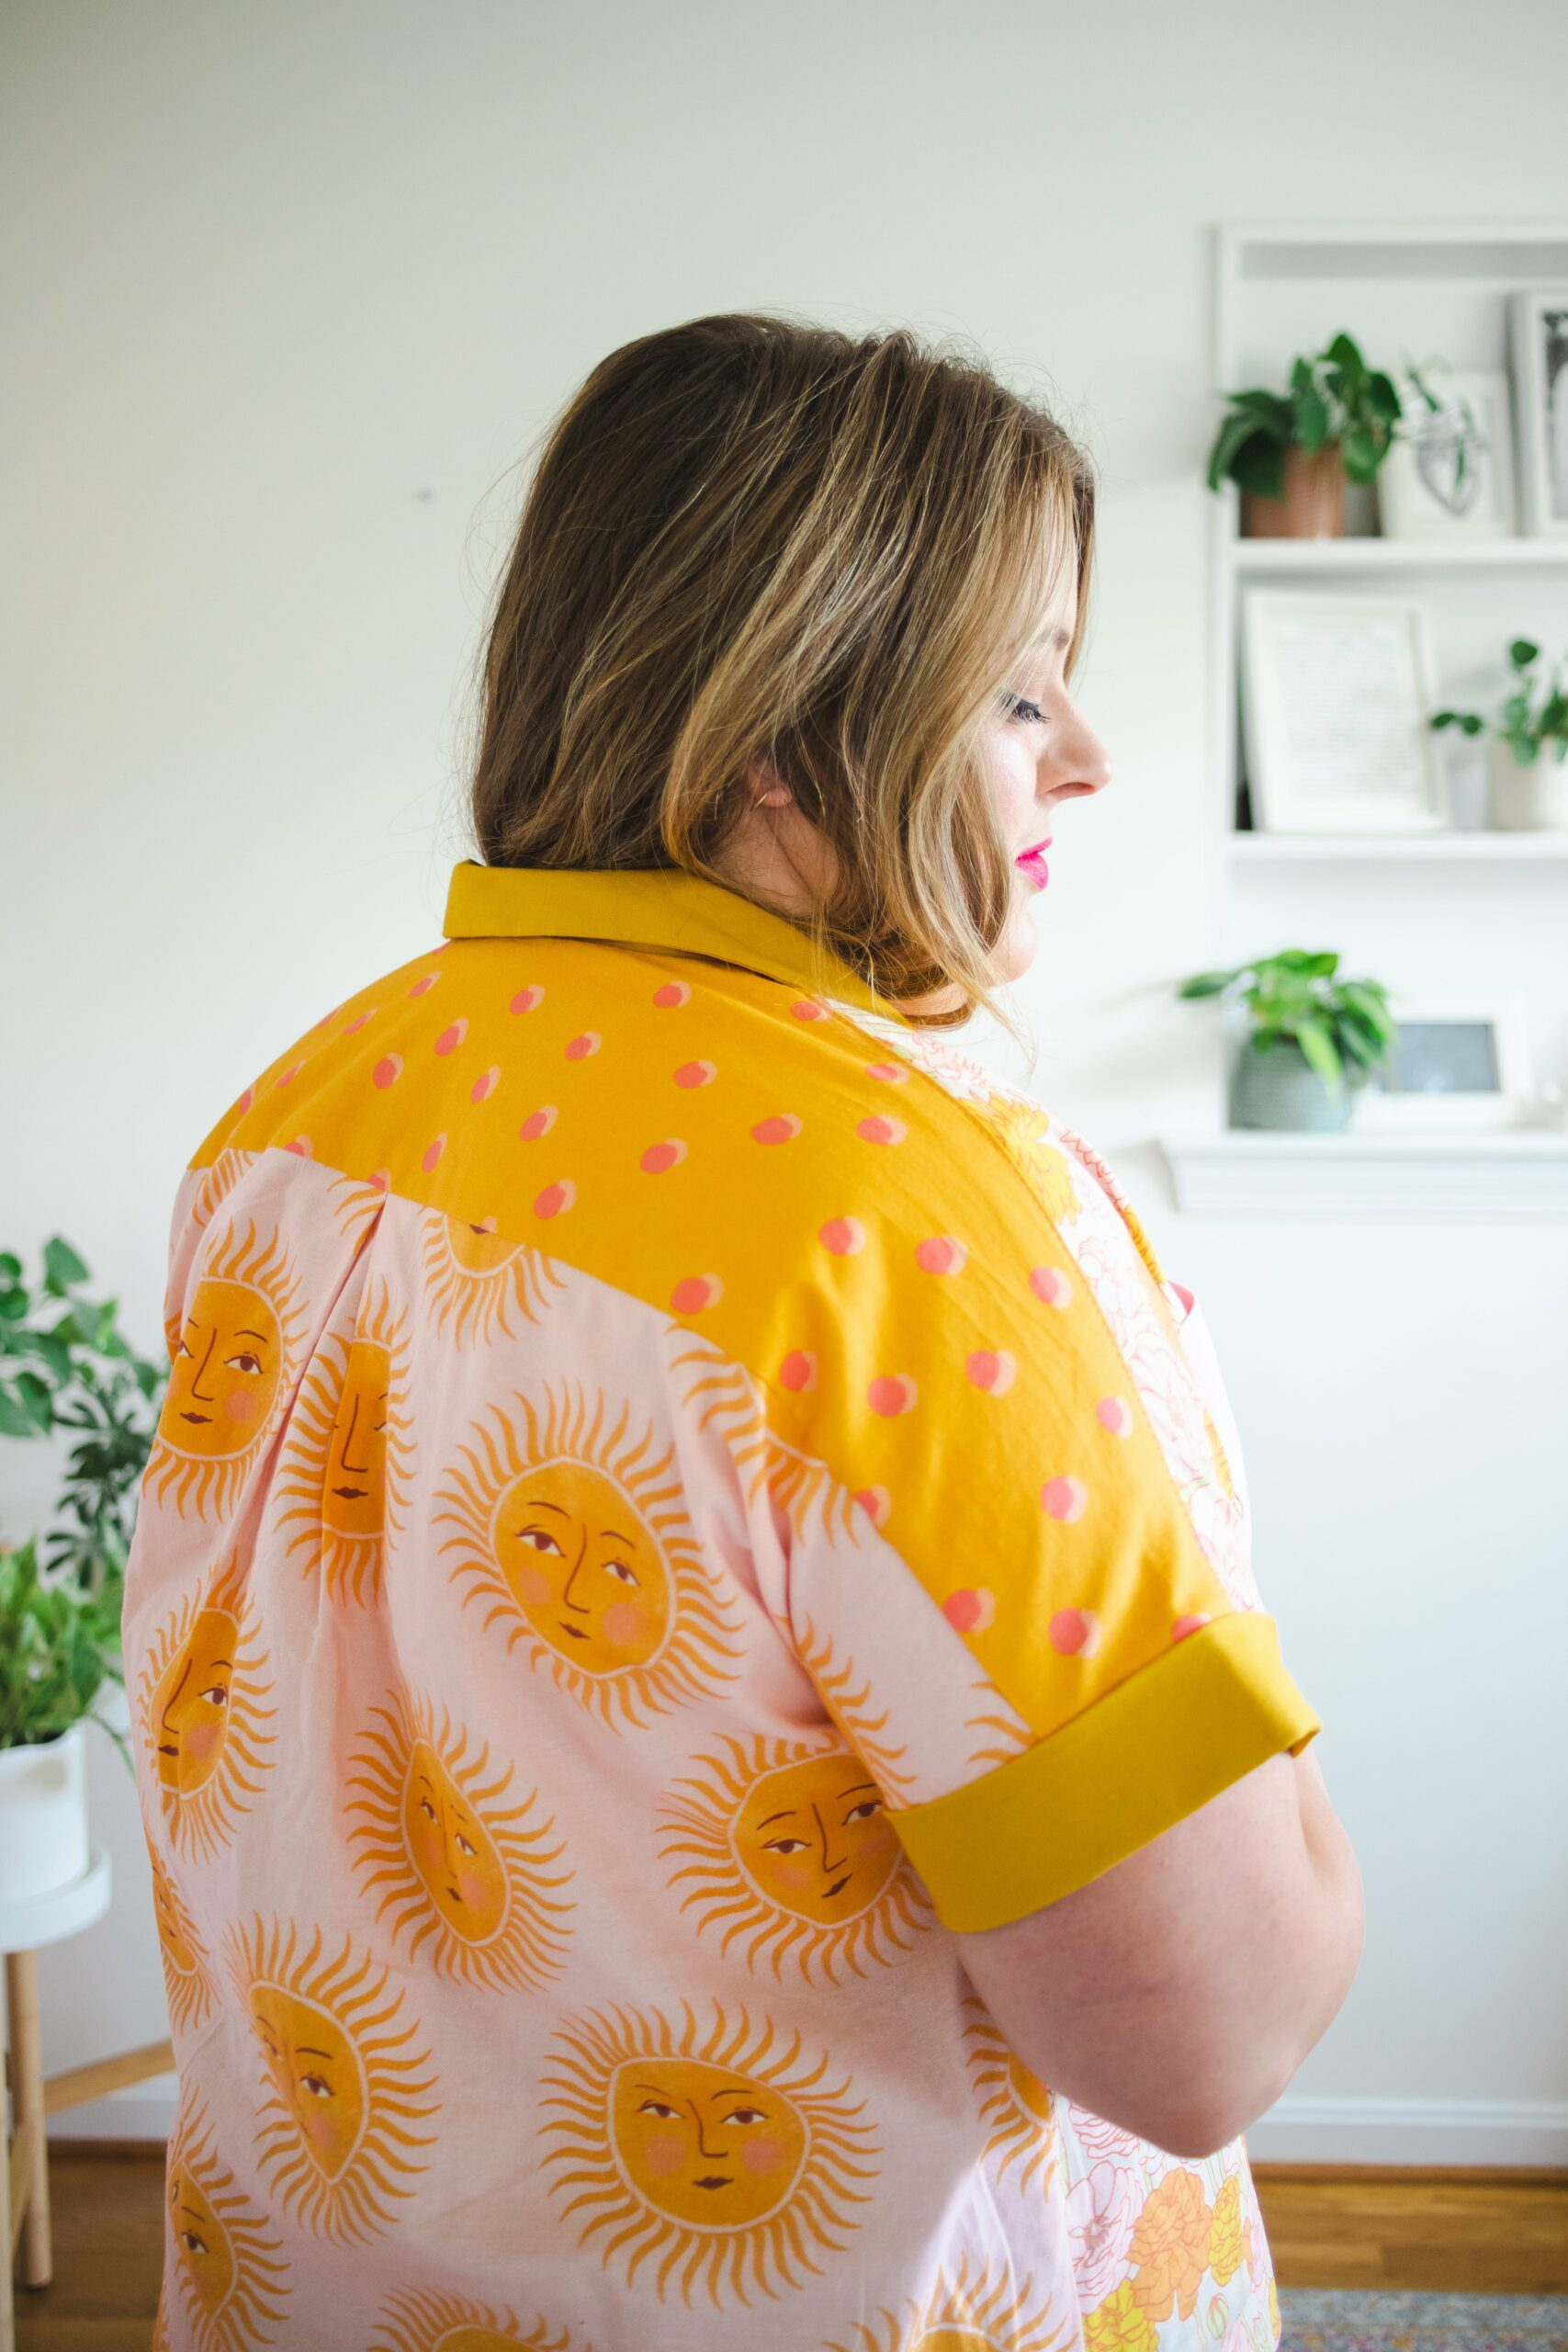 Meg wearing a yellow and pink shirt with polka dots and suns